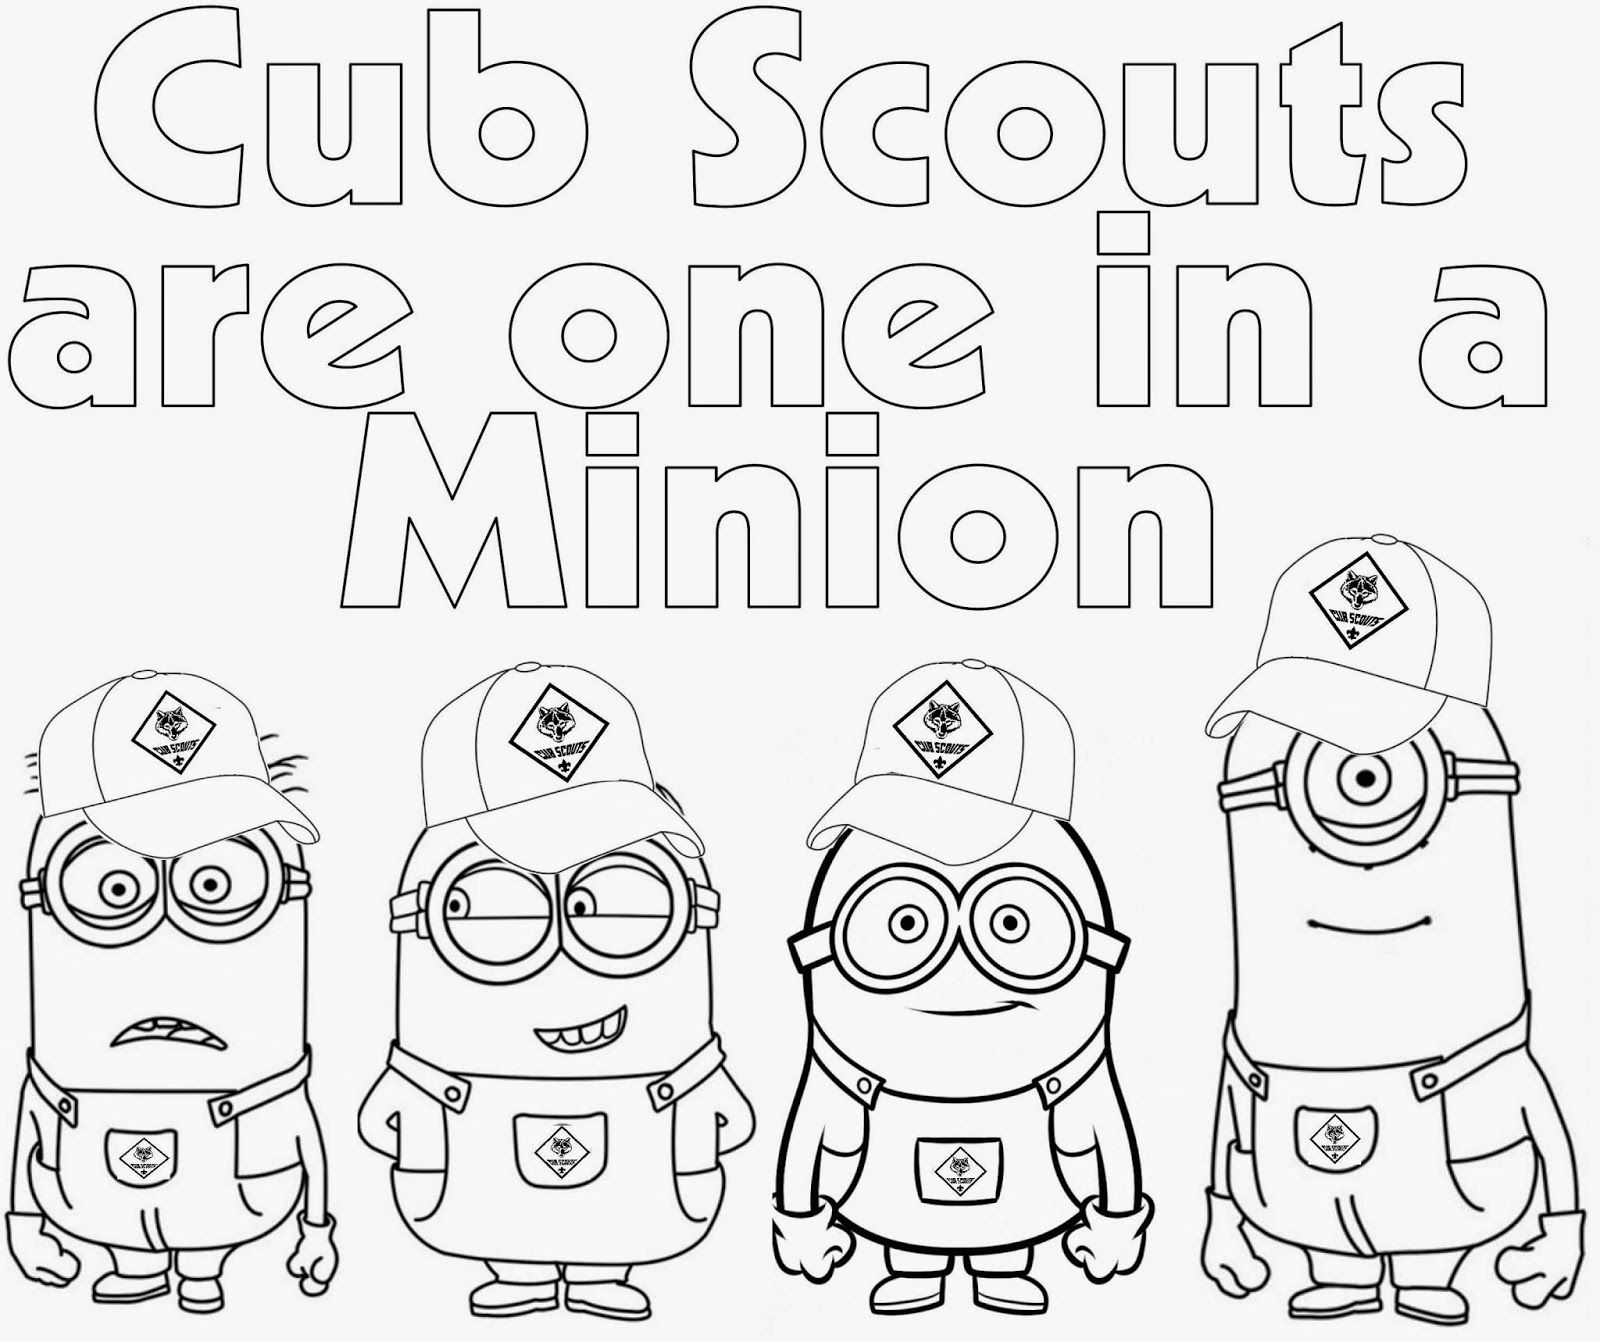 scout coloring pages - cub scout minions printable coloring page from despicable